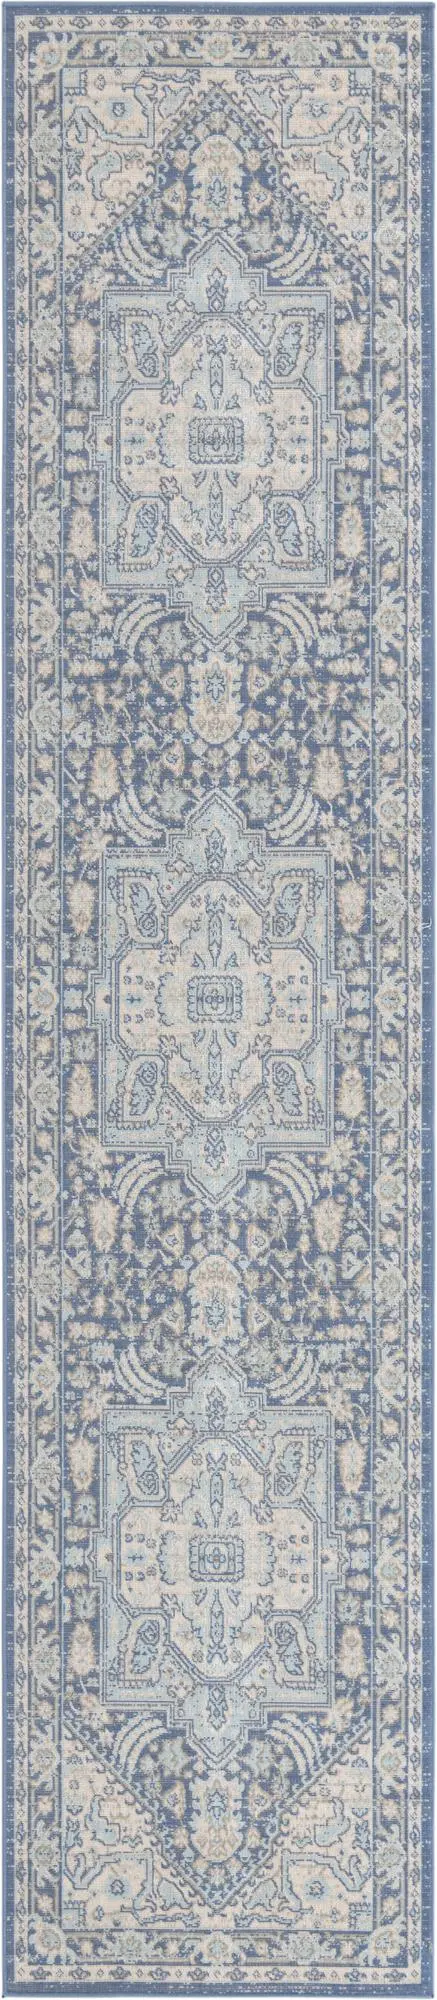 French Blue 2 7 X 12 Whitney Runner Rug Rugs Com In 2020 Rugs Rugs Com Rug Runner